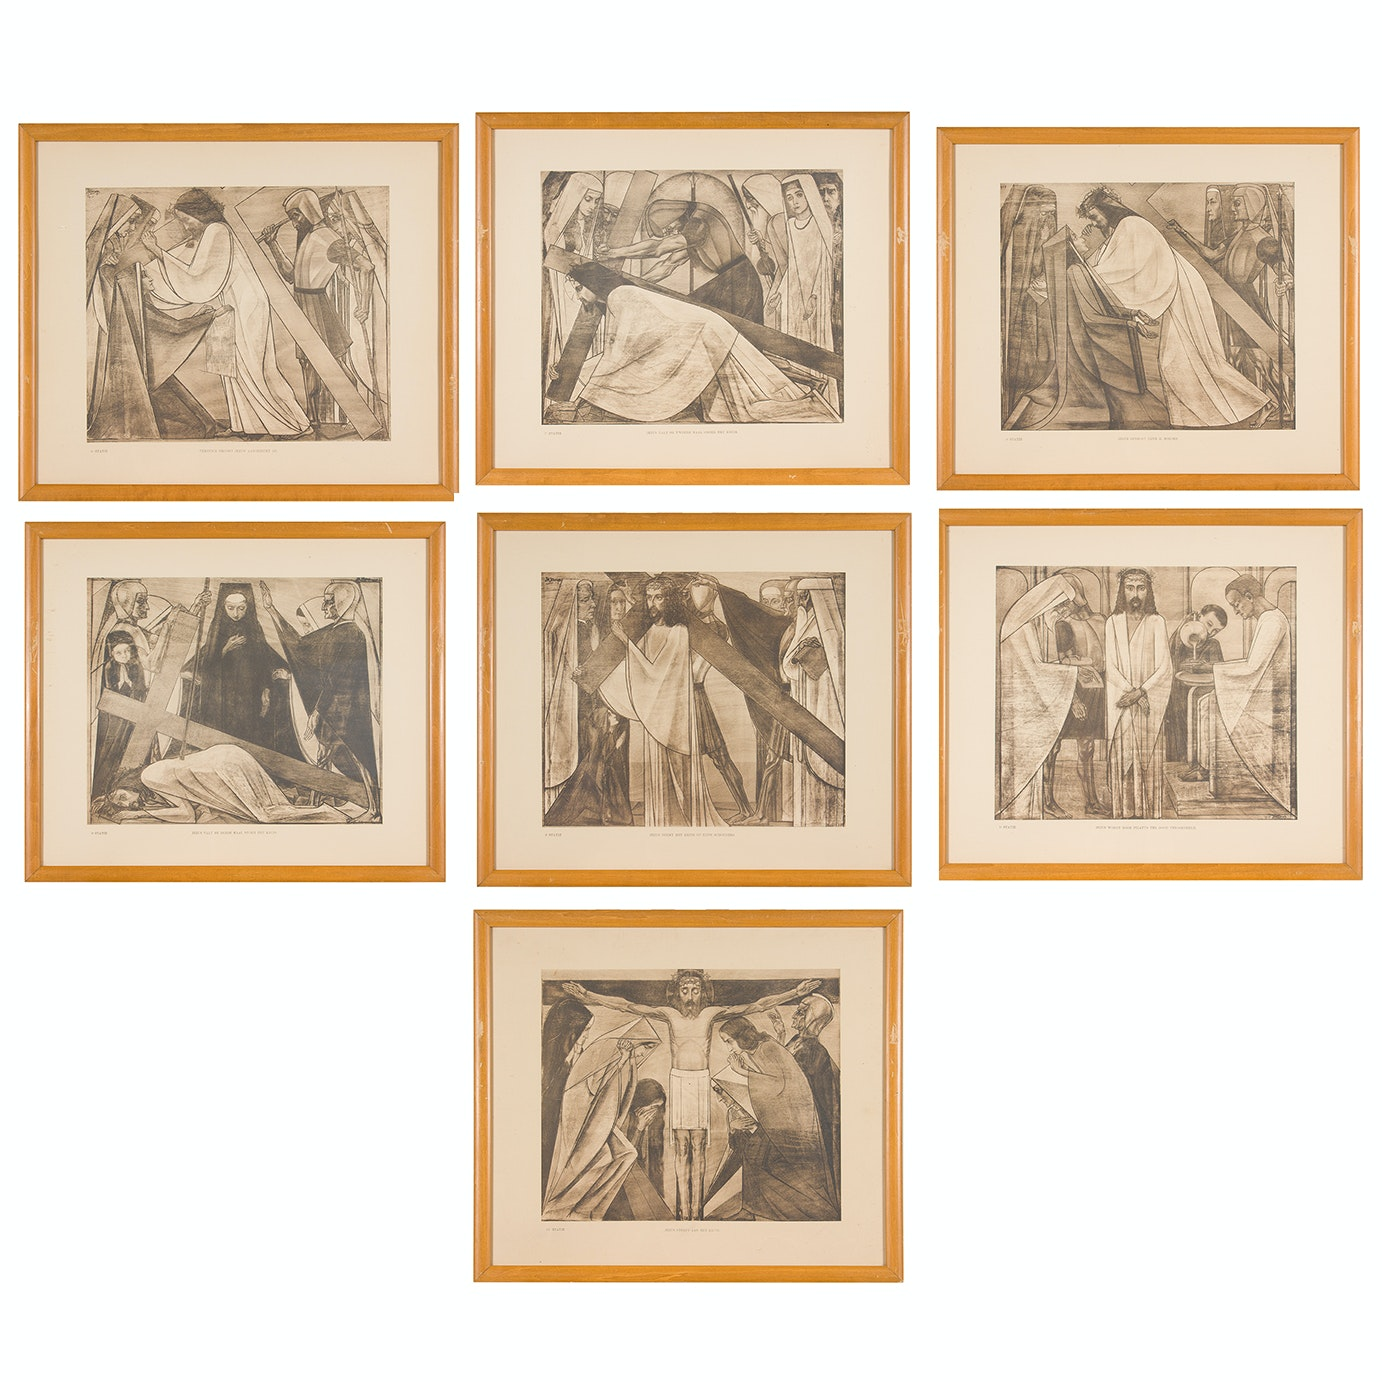 Jan Toorop Offset Lithographs After Stations of the Cross